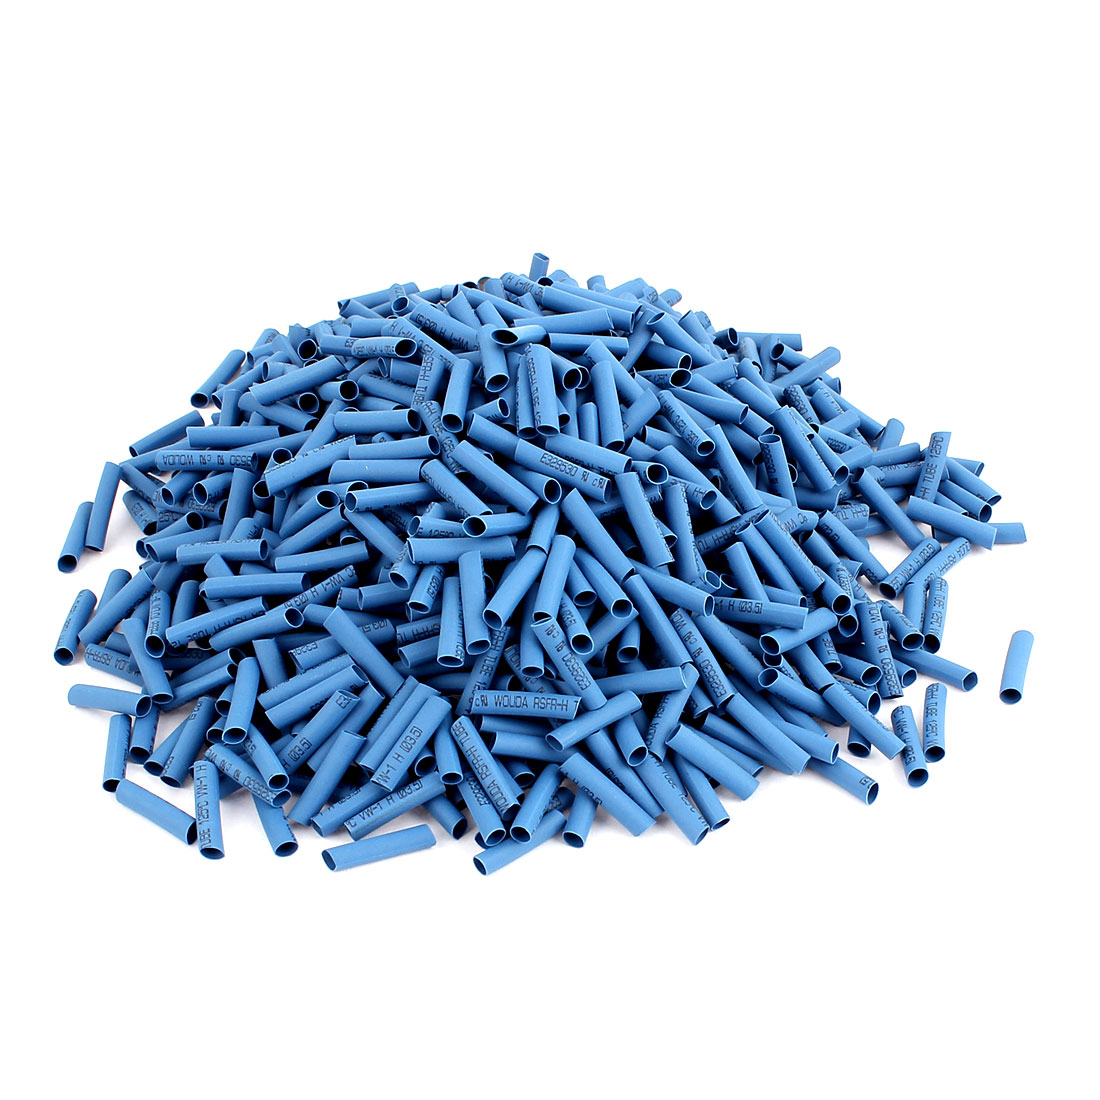 1000 Pcs Electrical Connection Cable Sleeve 20mm Long Heat Shrink Tubing Wrap Blue